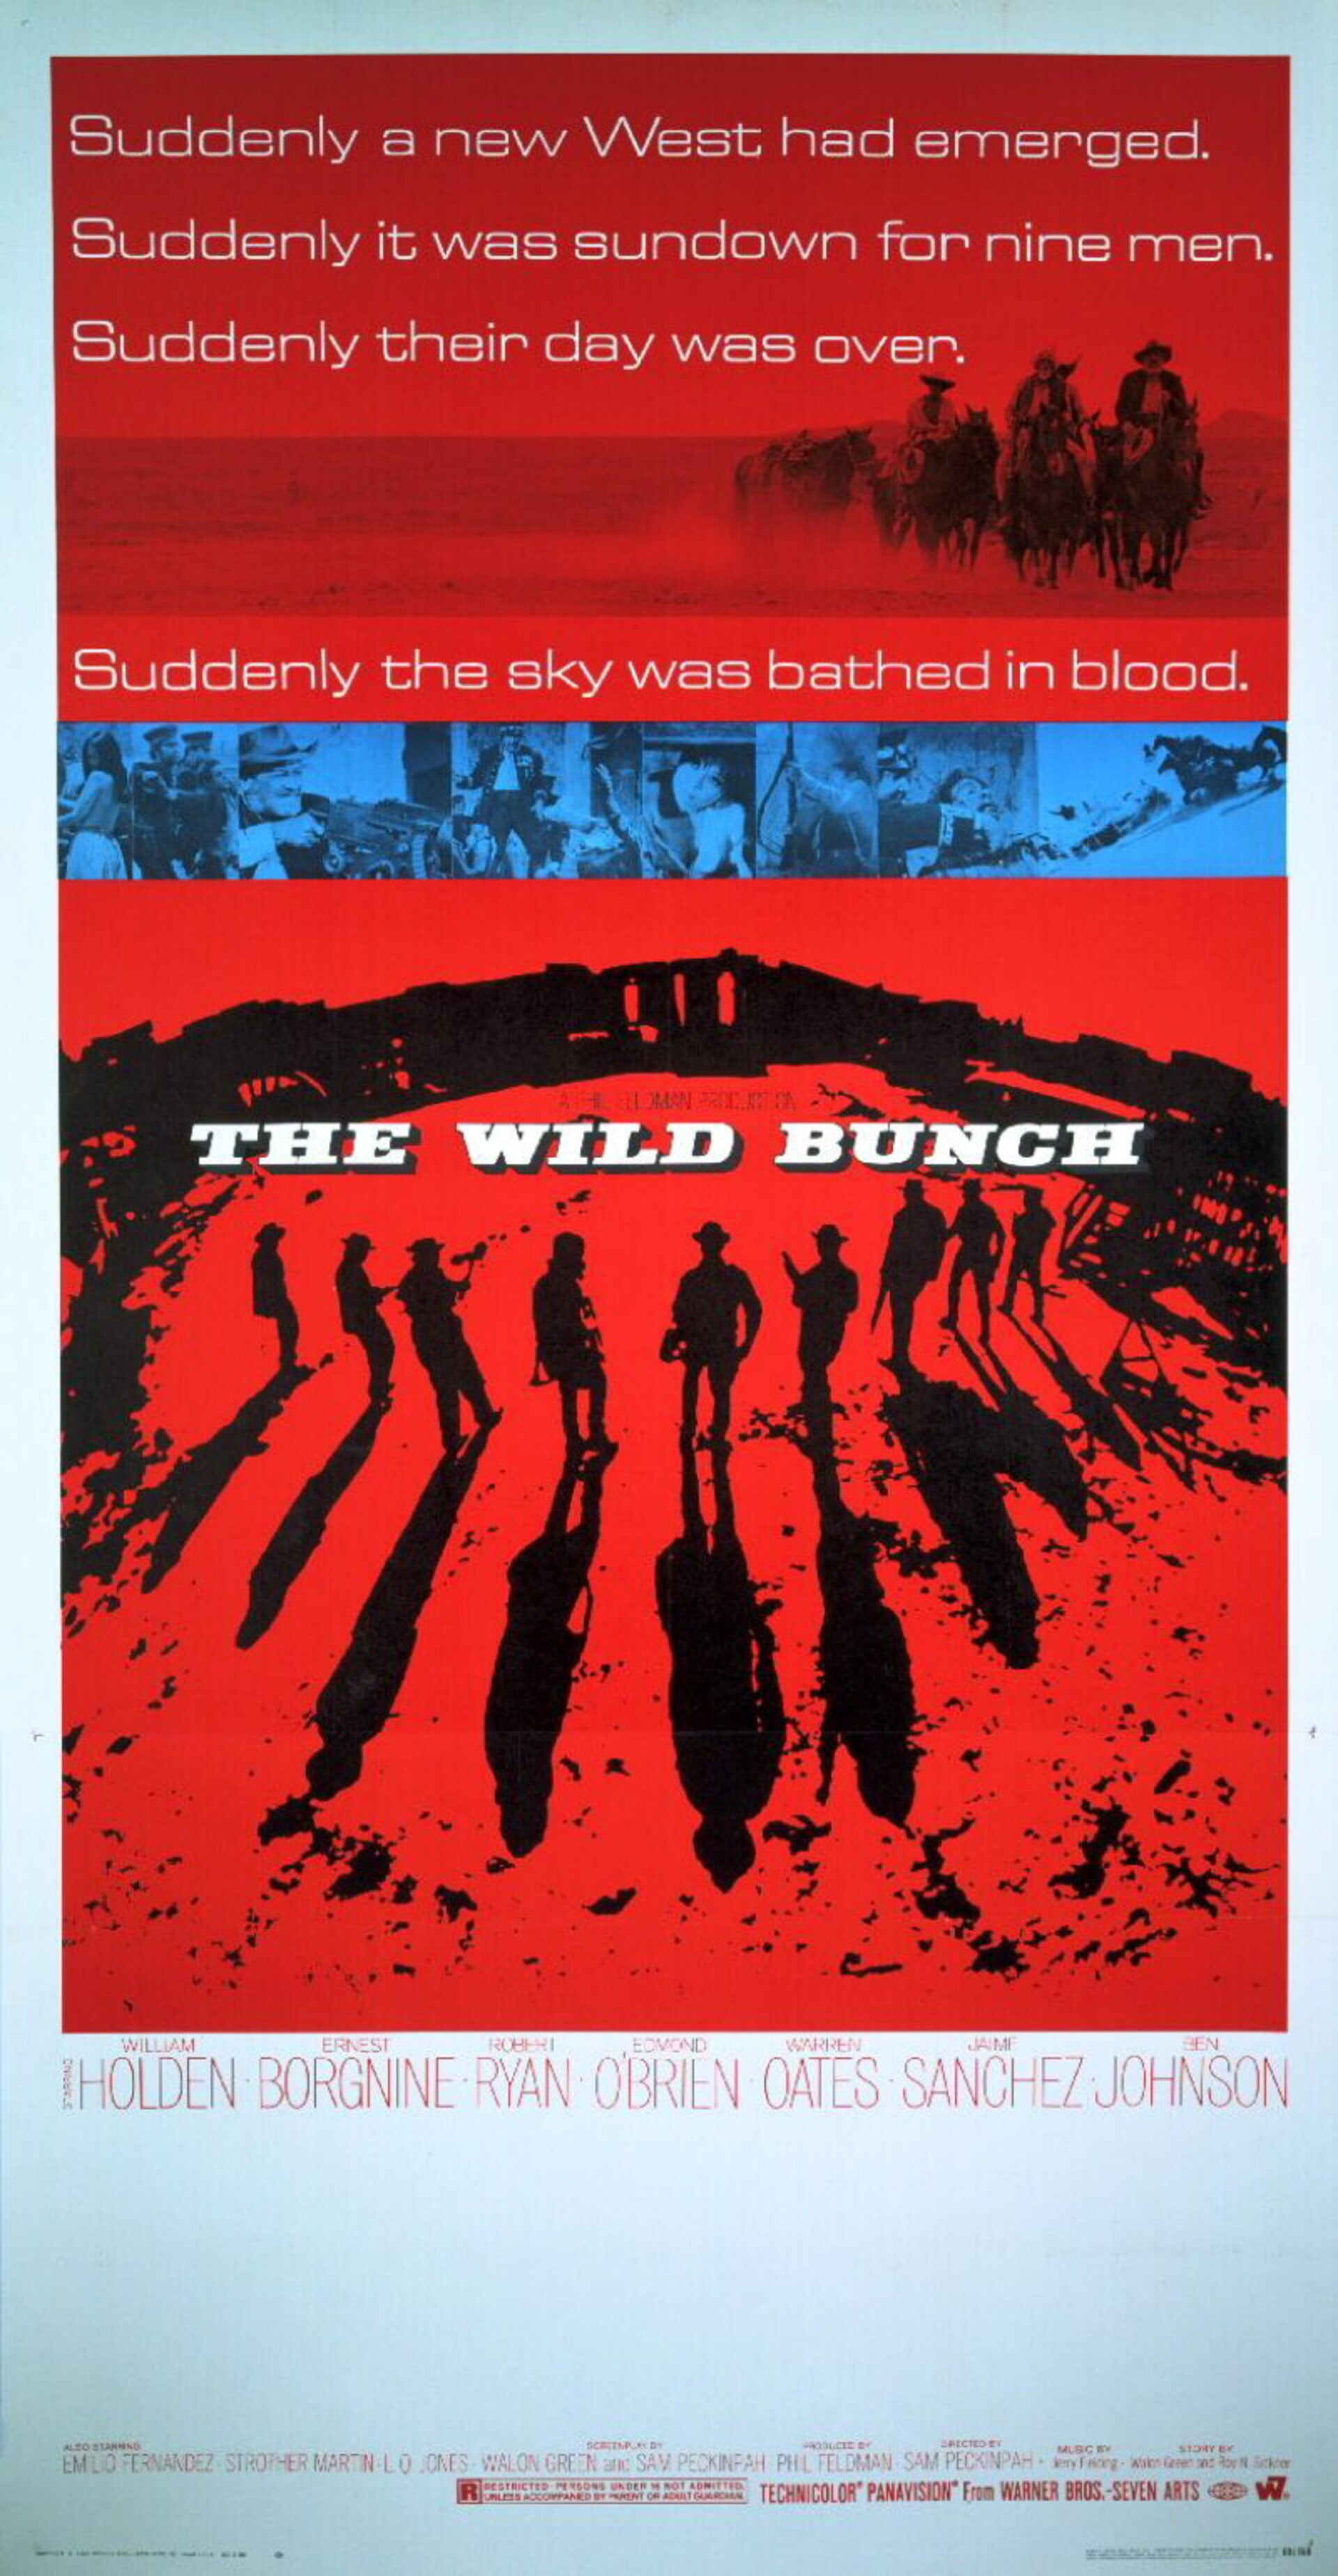 The Wild Bunch - Poster 15